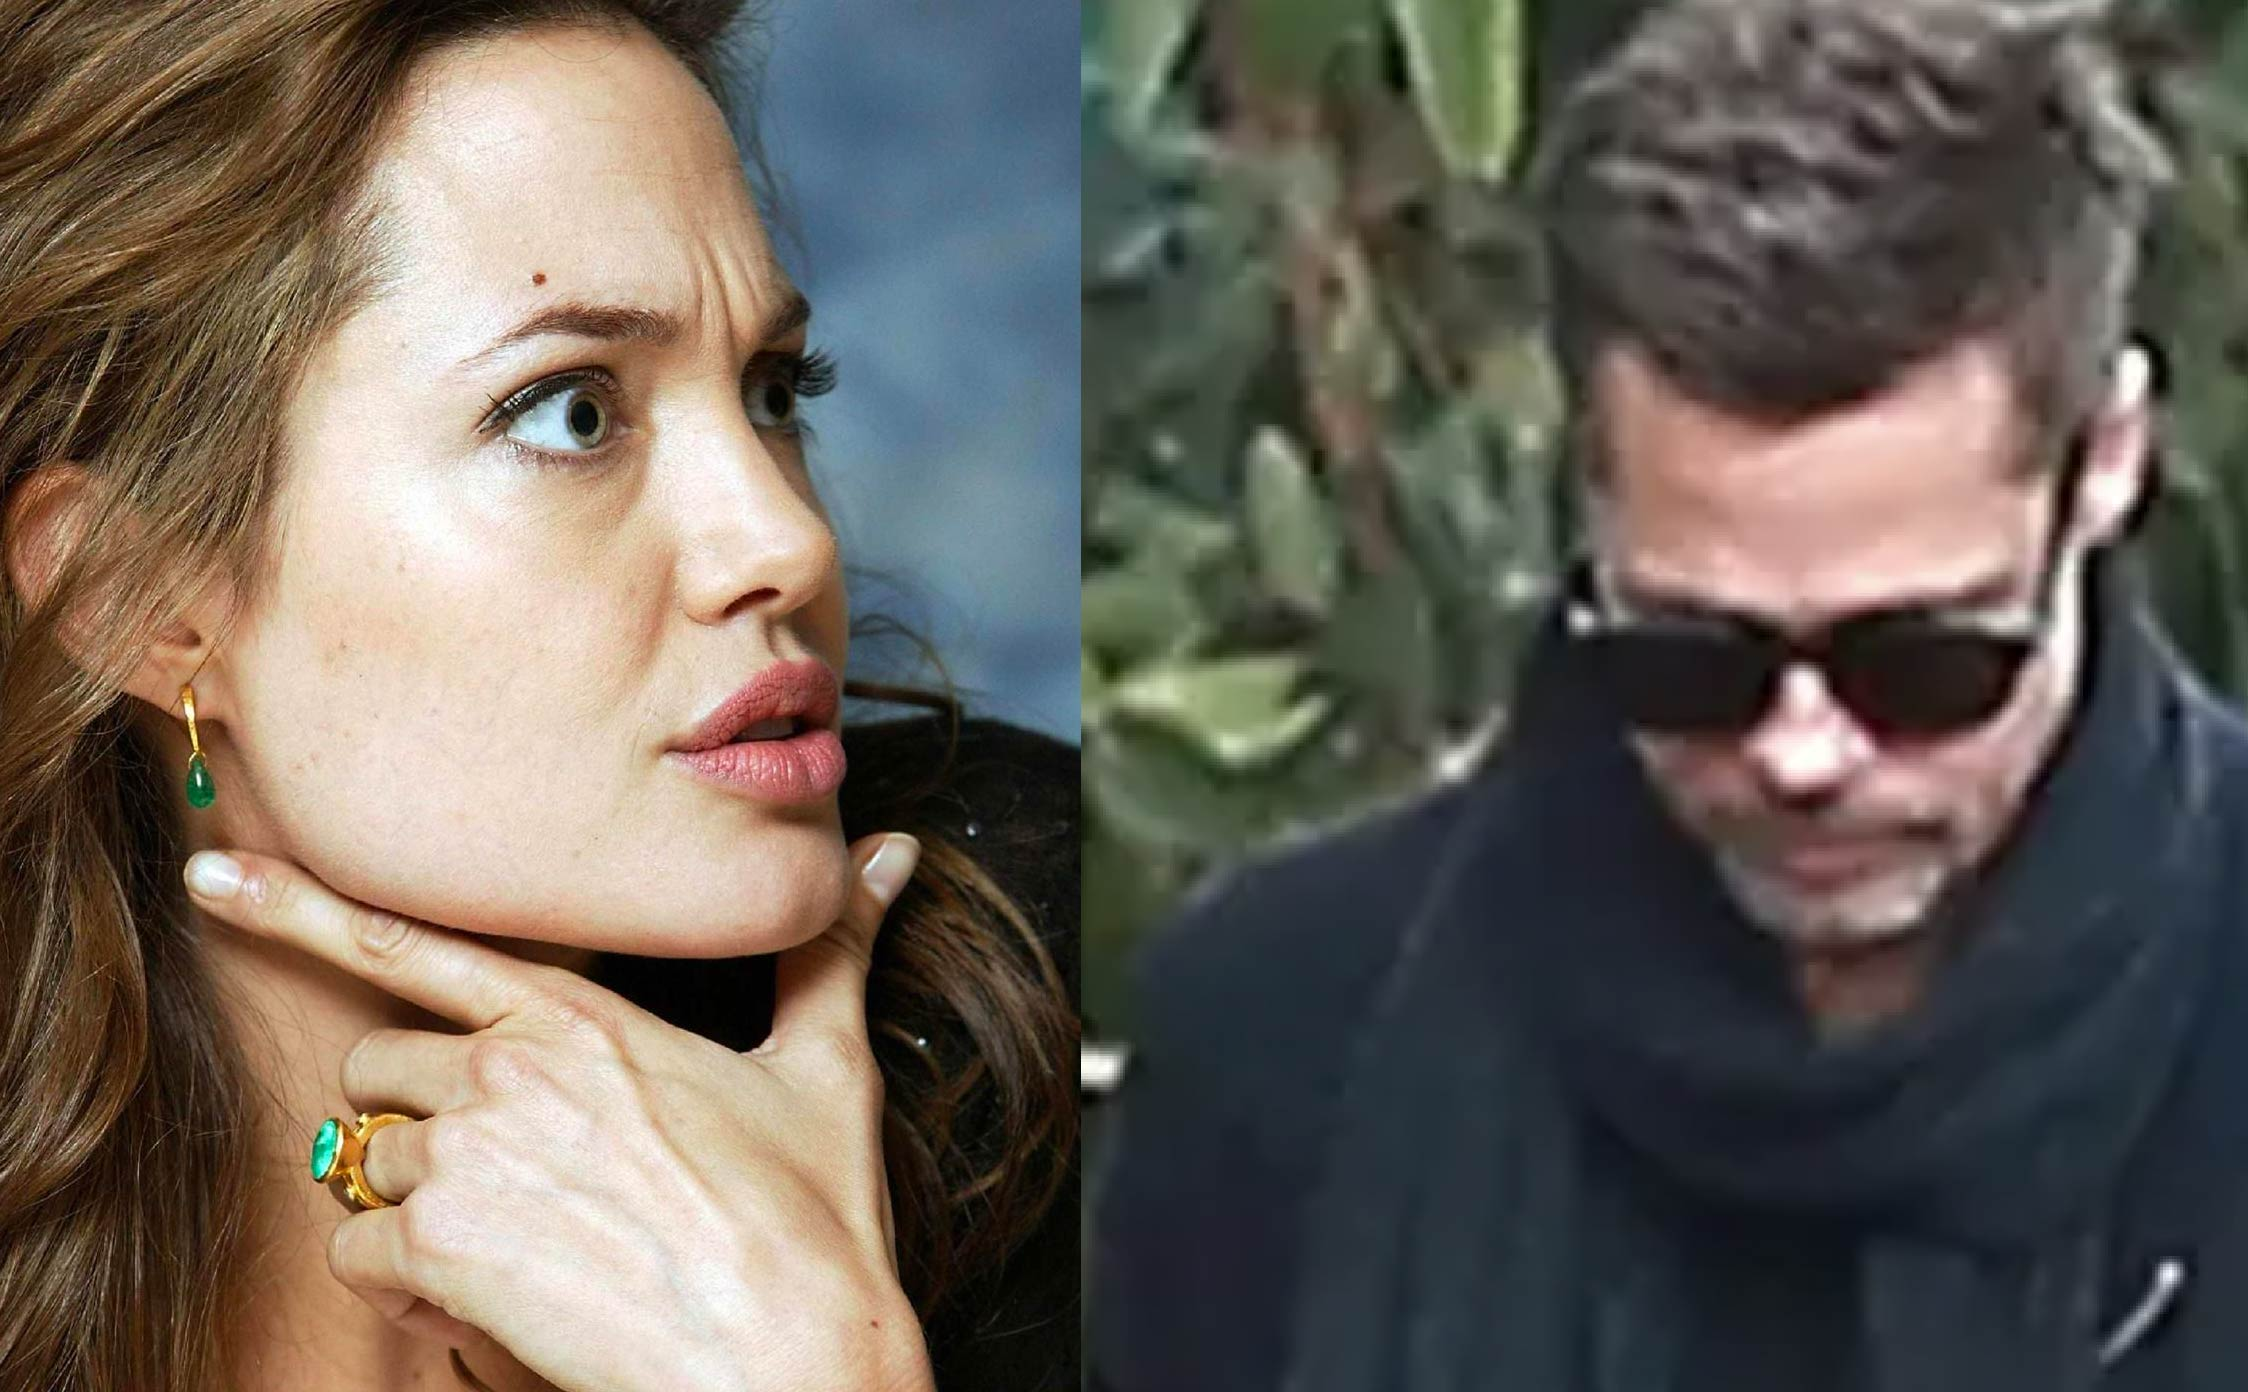 Brad Pitt/Angelina Jolie Divorce Just Took a Shocking Turn, as New Allegations Surface